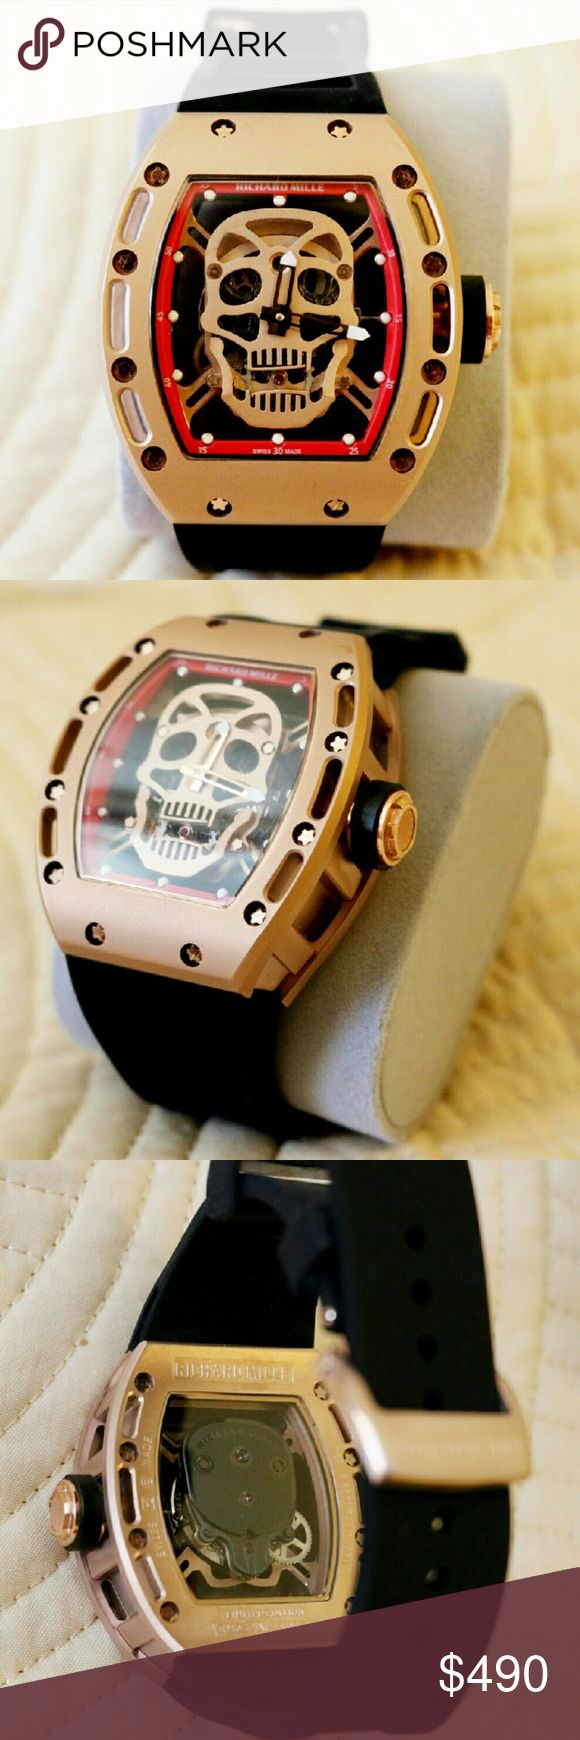 Richard Mille Skull Automatic watch Gold titanium case with black rubber band  Used watch without box Richard Mille  Accessories Watches